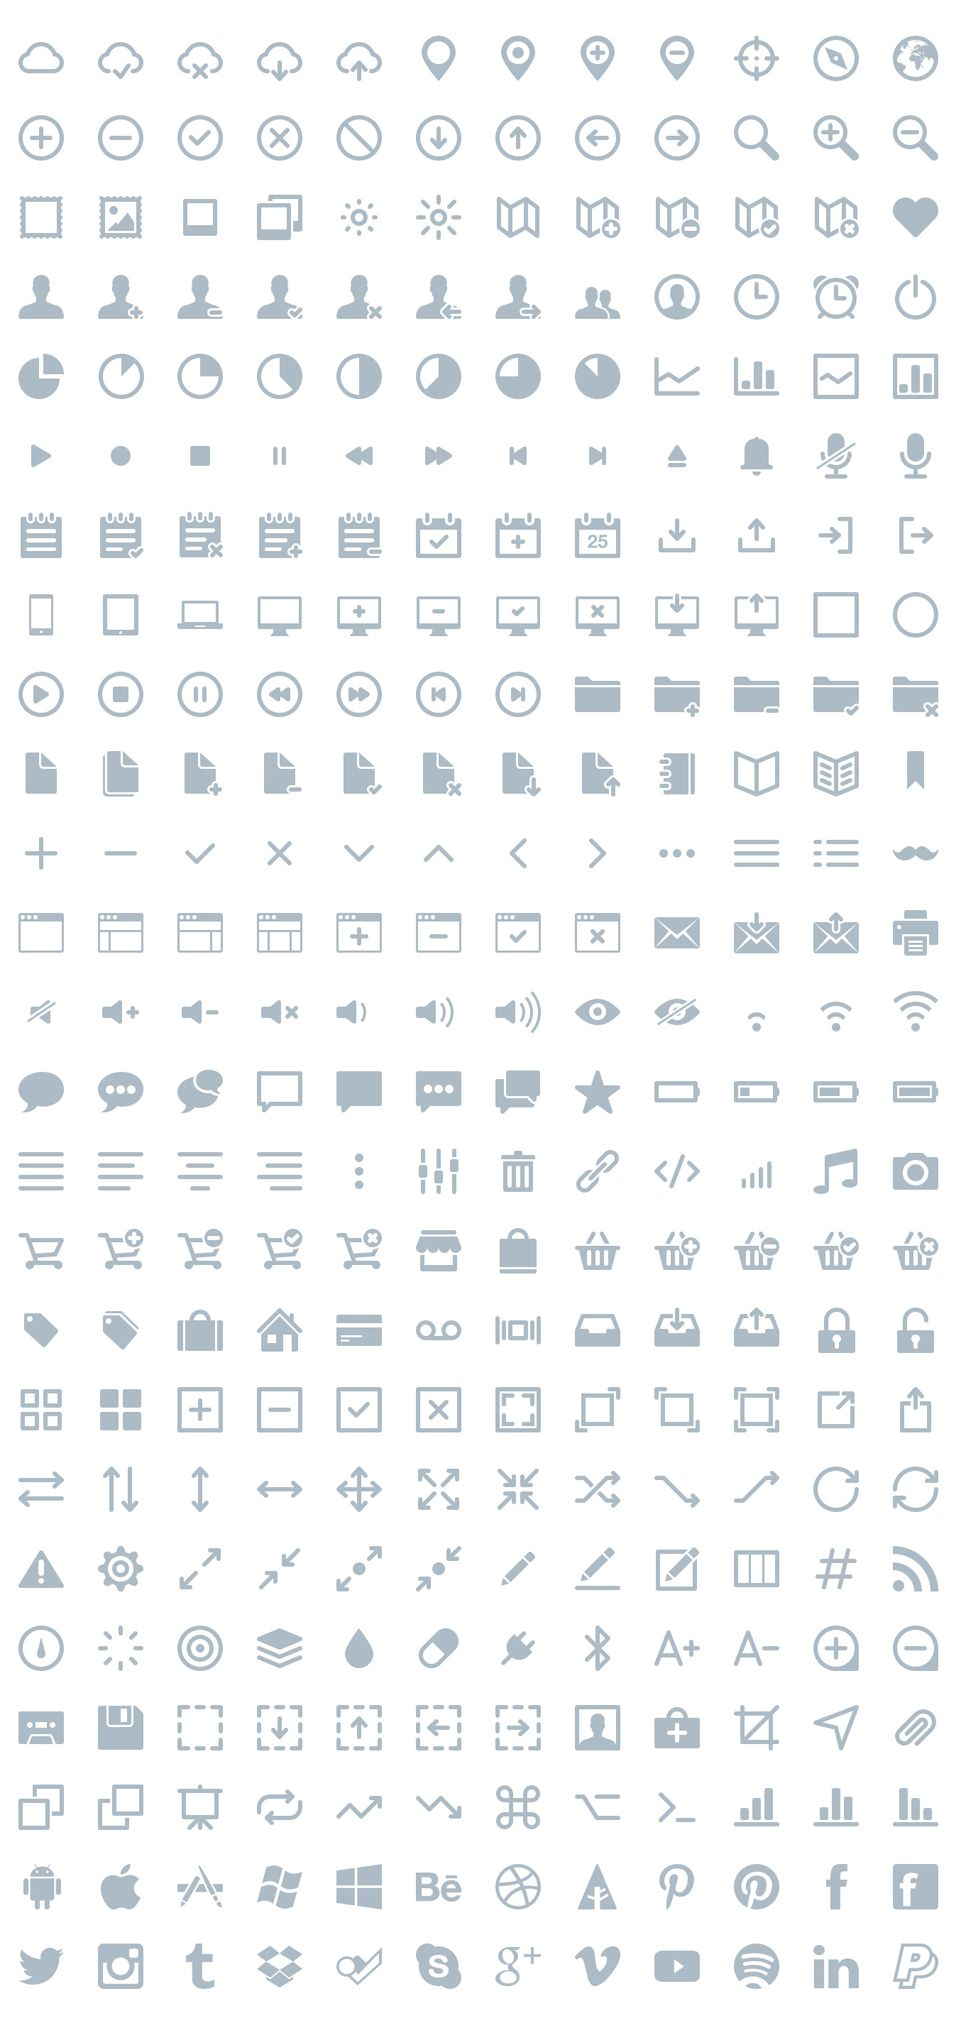 In this page we are talking about SVG (Scalable Vector